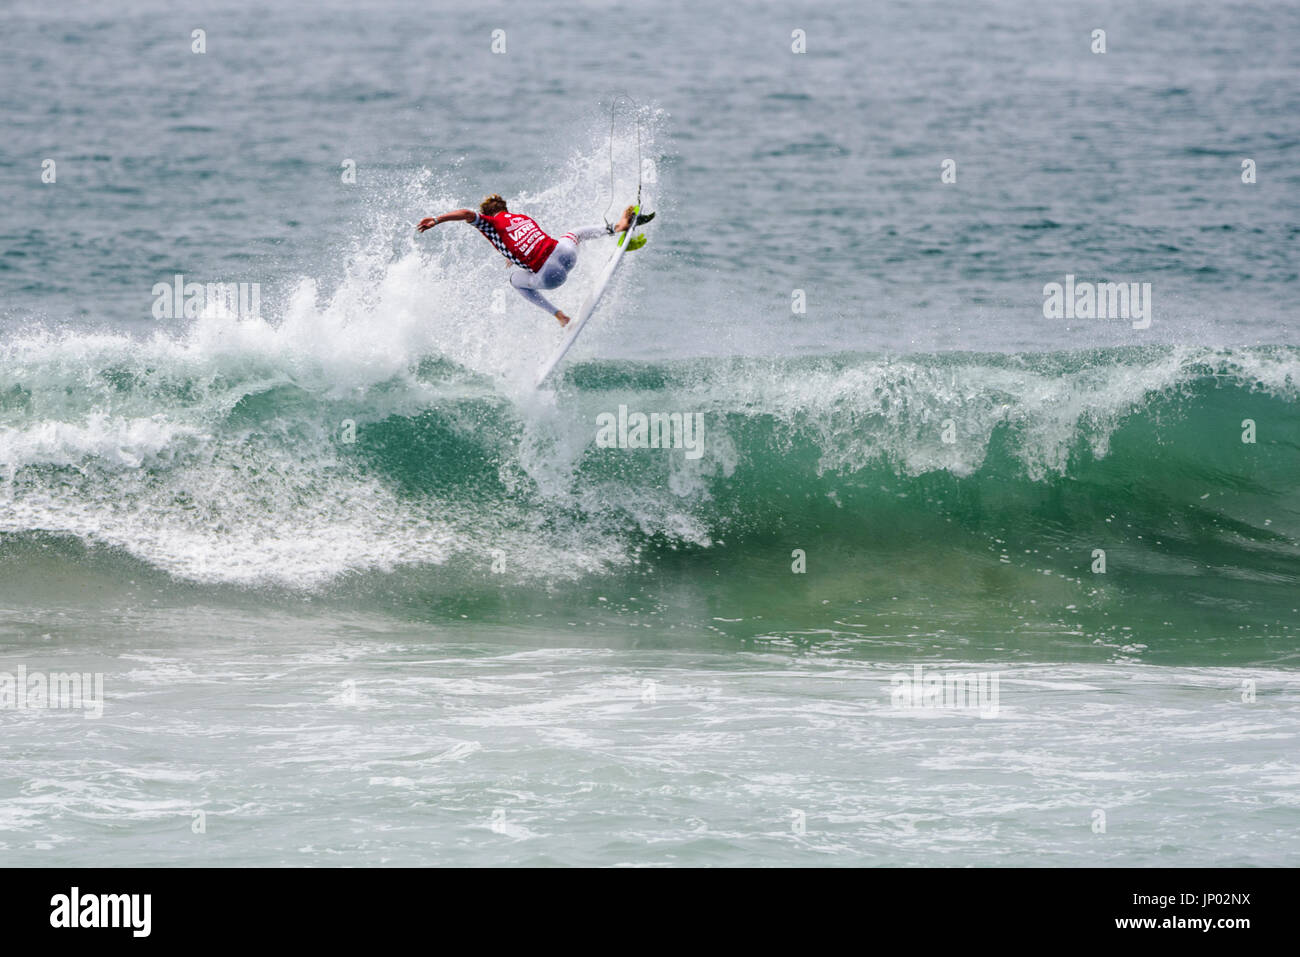 Huntington Beach, USA. 31 July, 2017. Kolohe Andino (USA) rotates above the lip during his round 2 heat win at the 2017 VANS US Open of Surfing. Credit: Benjamin Ginsberg/Alamy Live News. - Stock Image